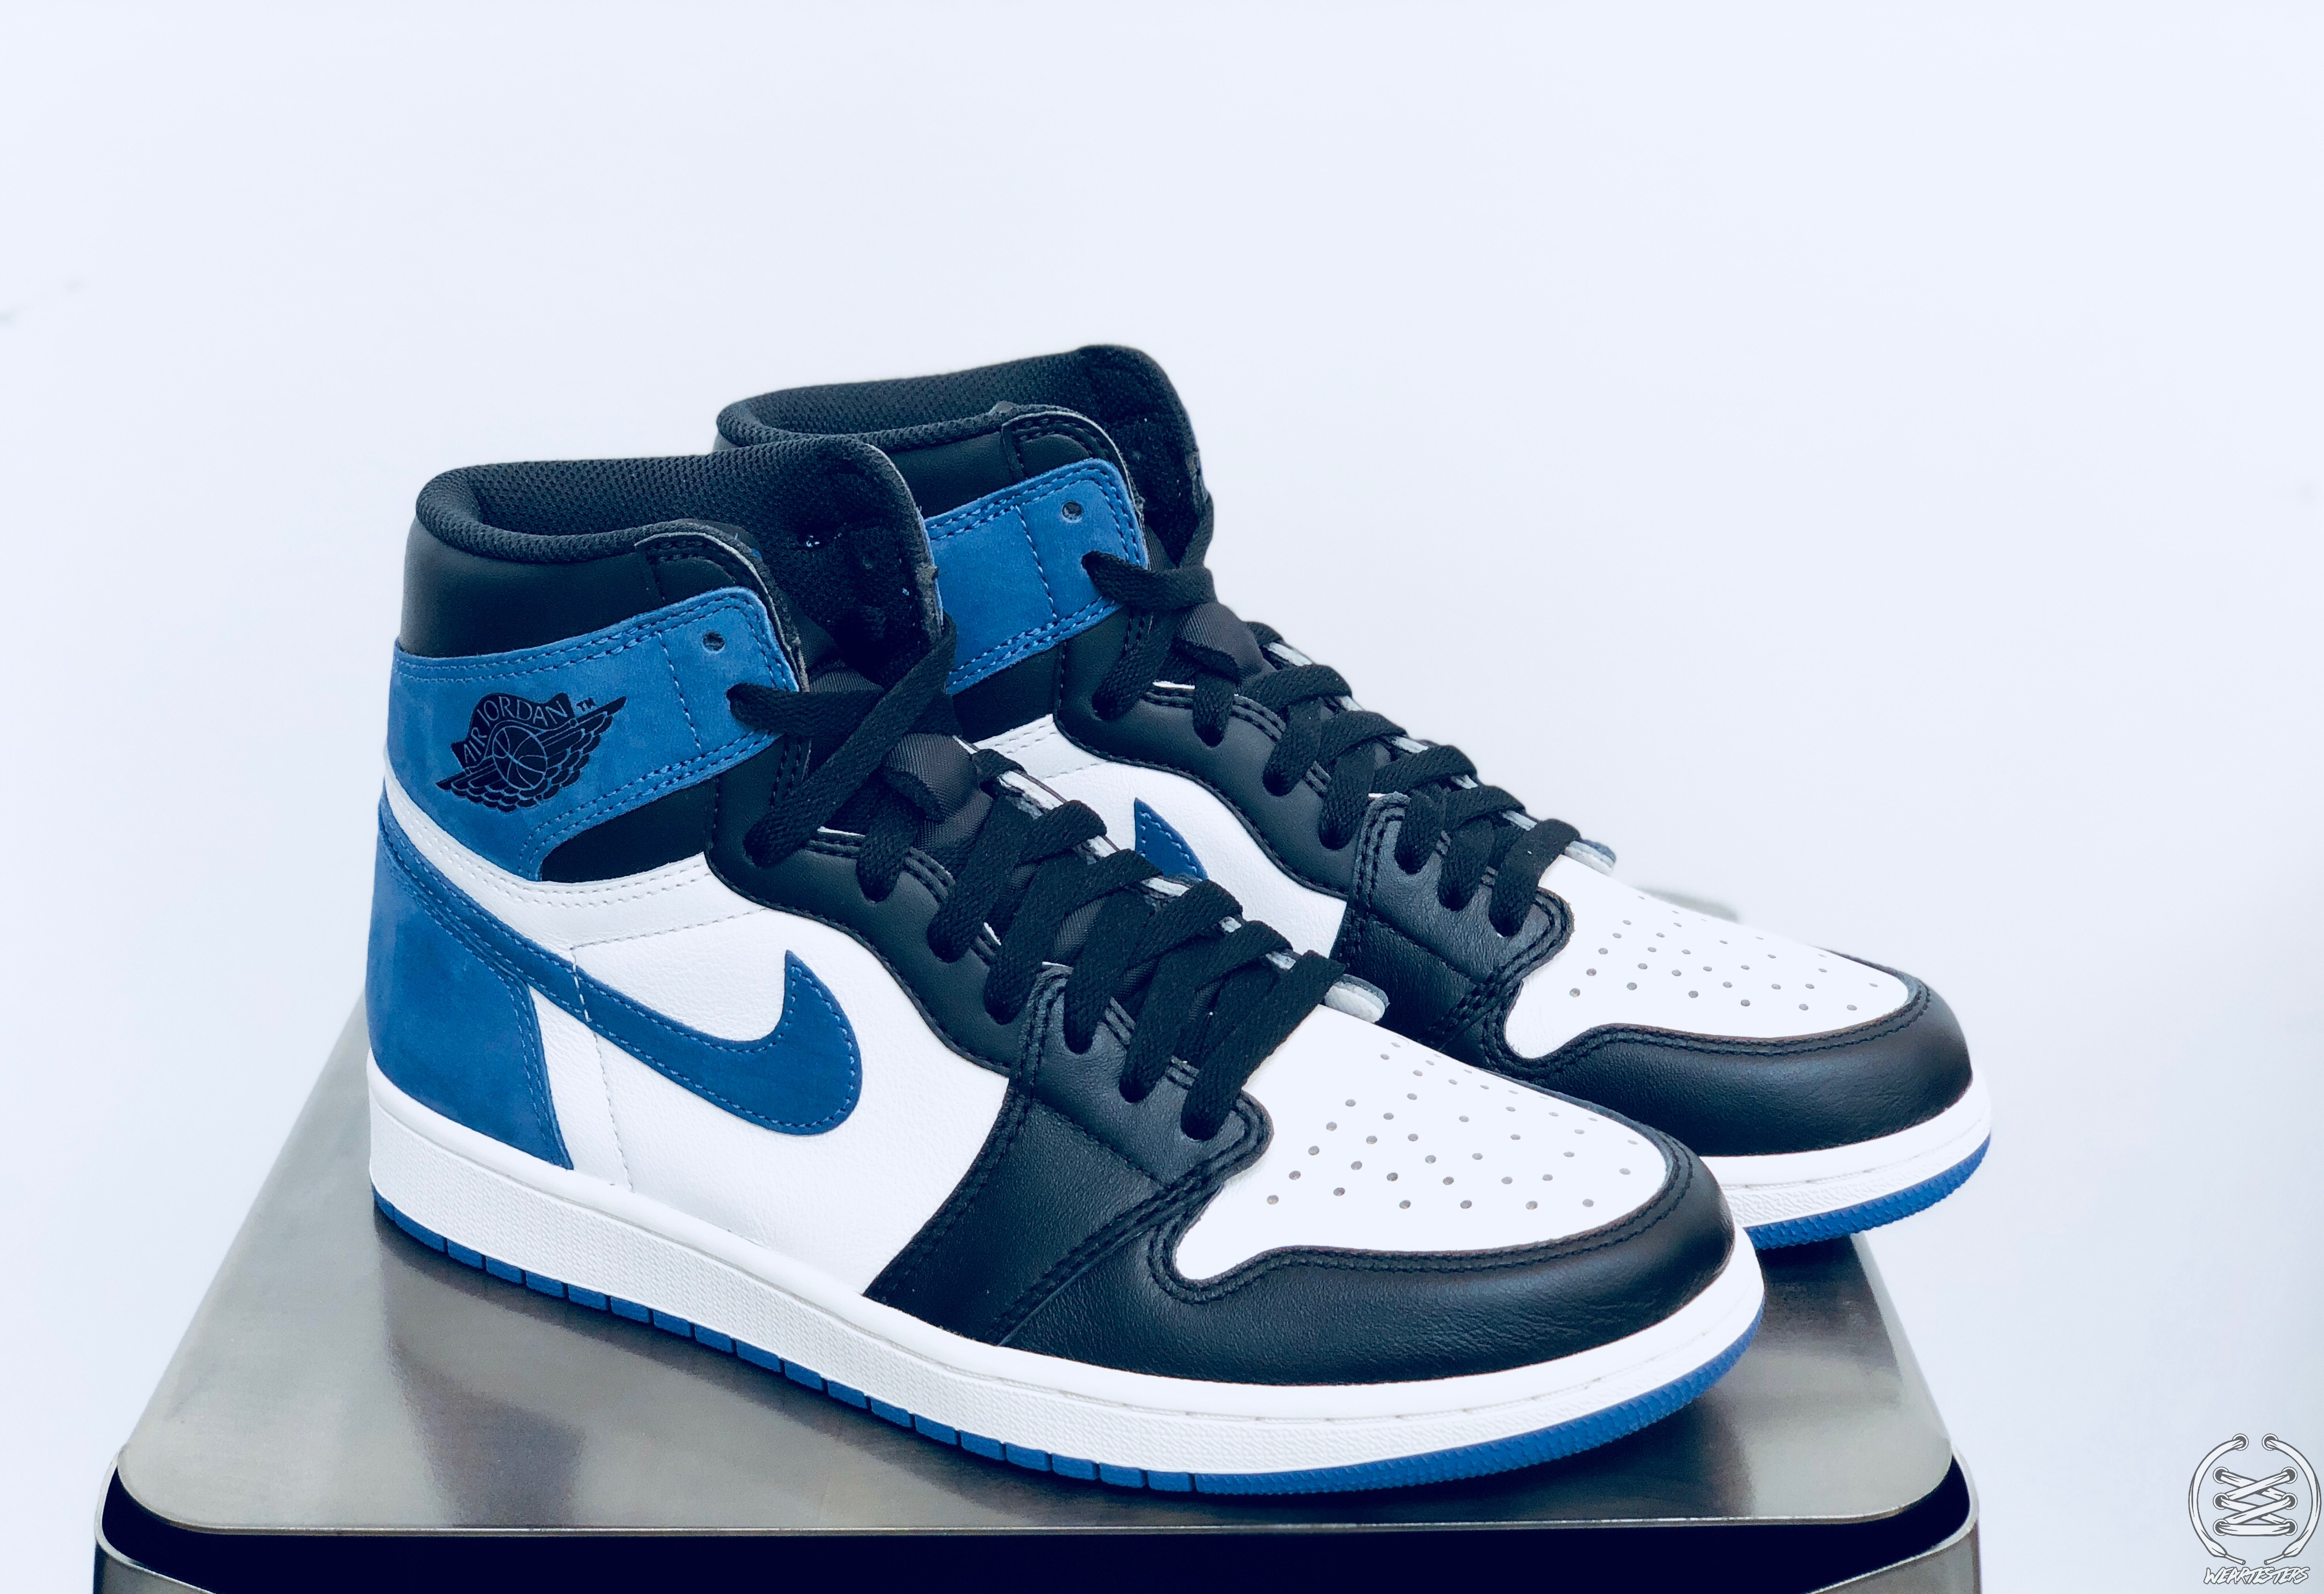 Air Jordan 1 Blue Moon Best Hand In The Game Collection 1 Weartesters